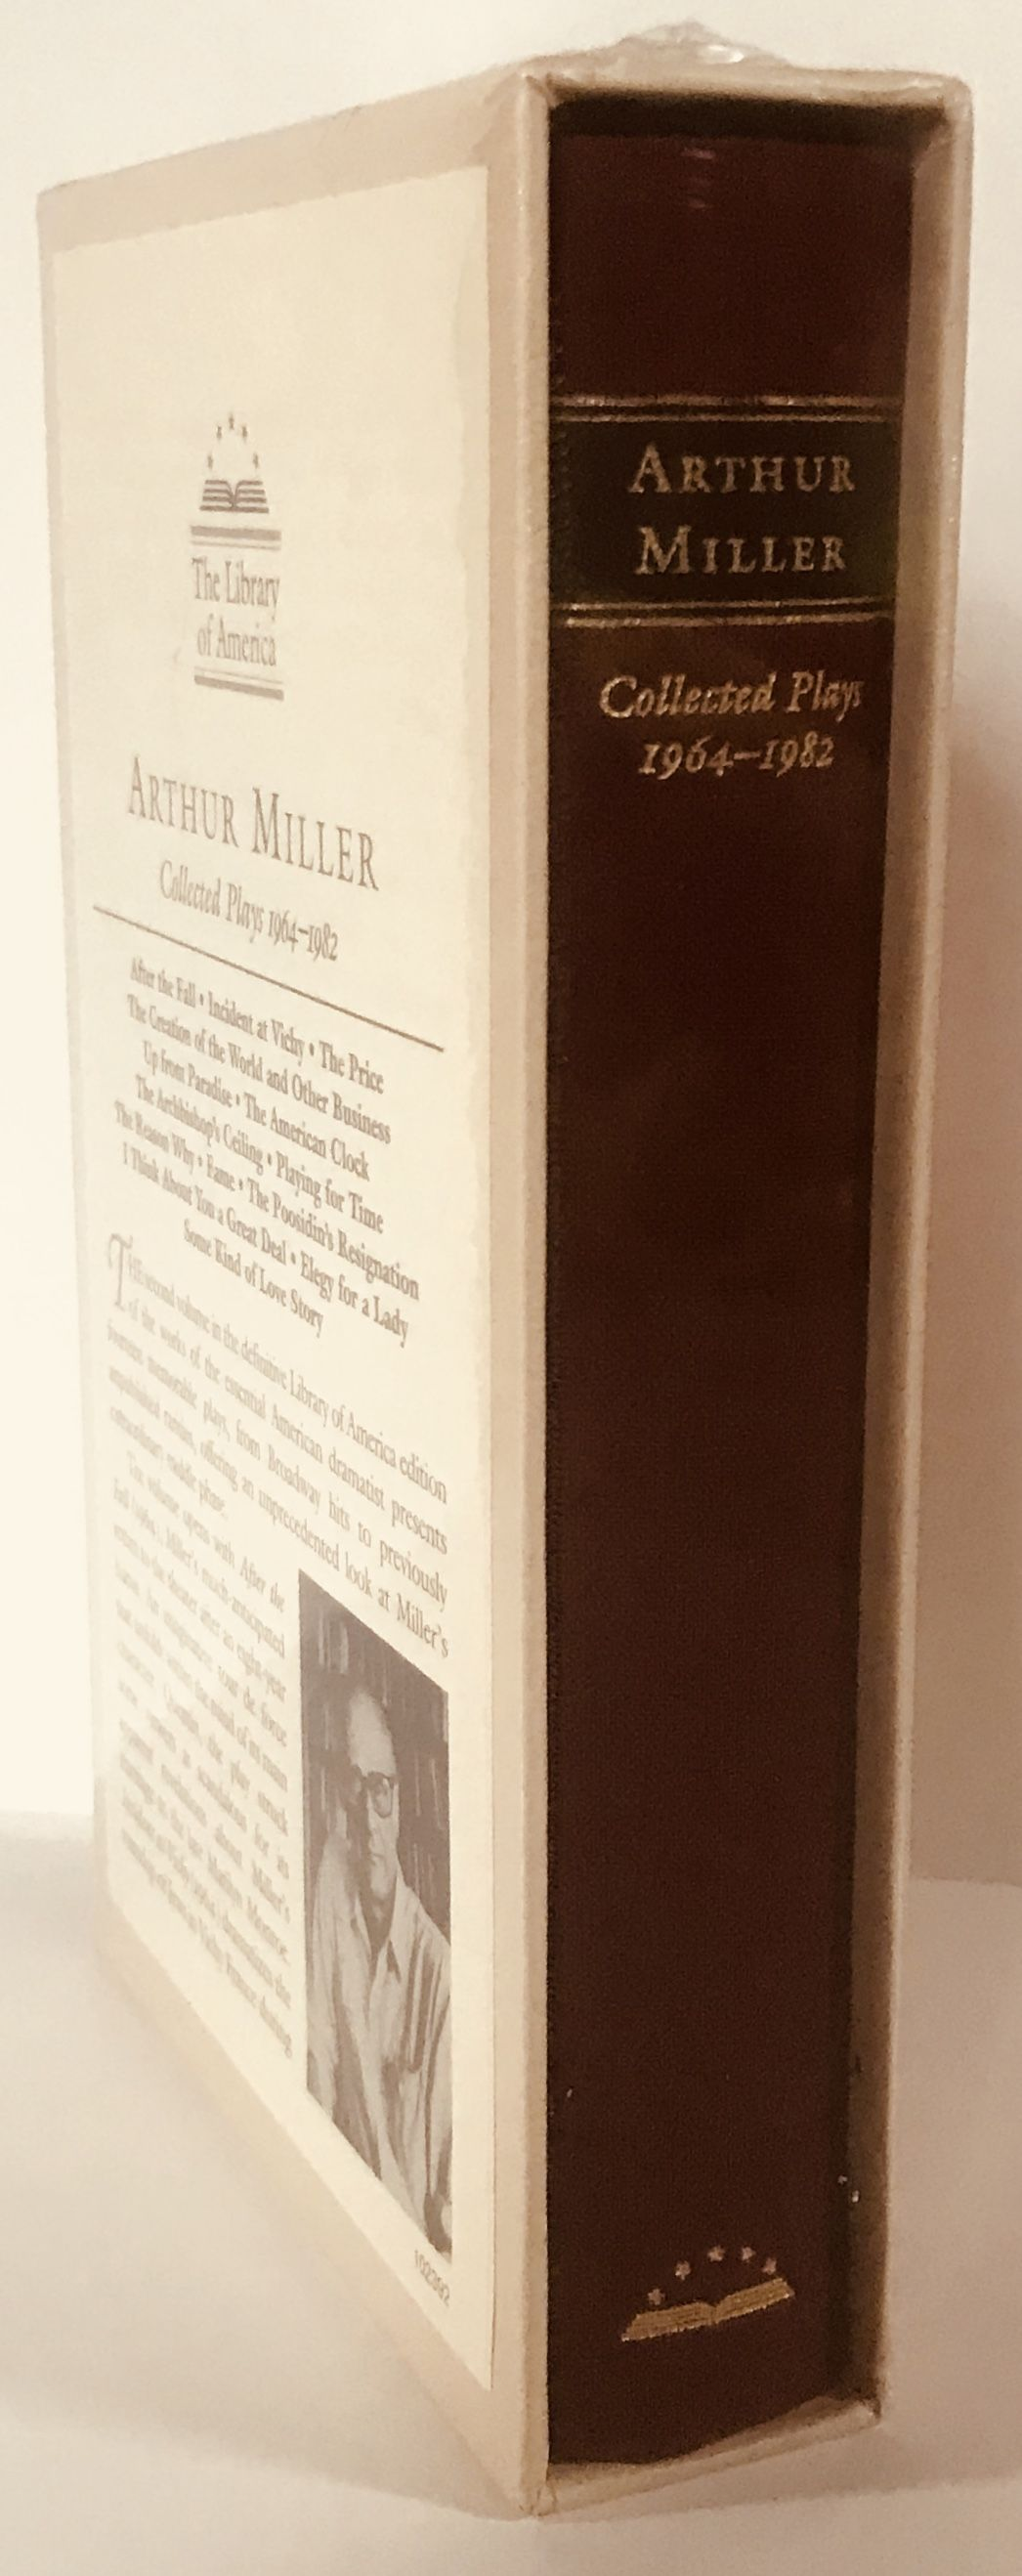 Arthur Miller: Collected Plays 1964-1982 (LOA #223) (Library of America Arthur Miller Edition), Arthur Miller